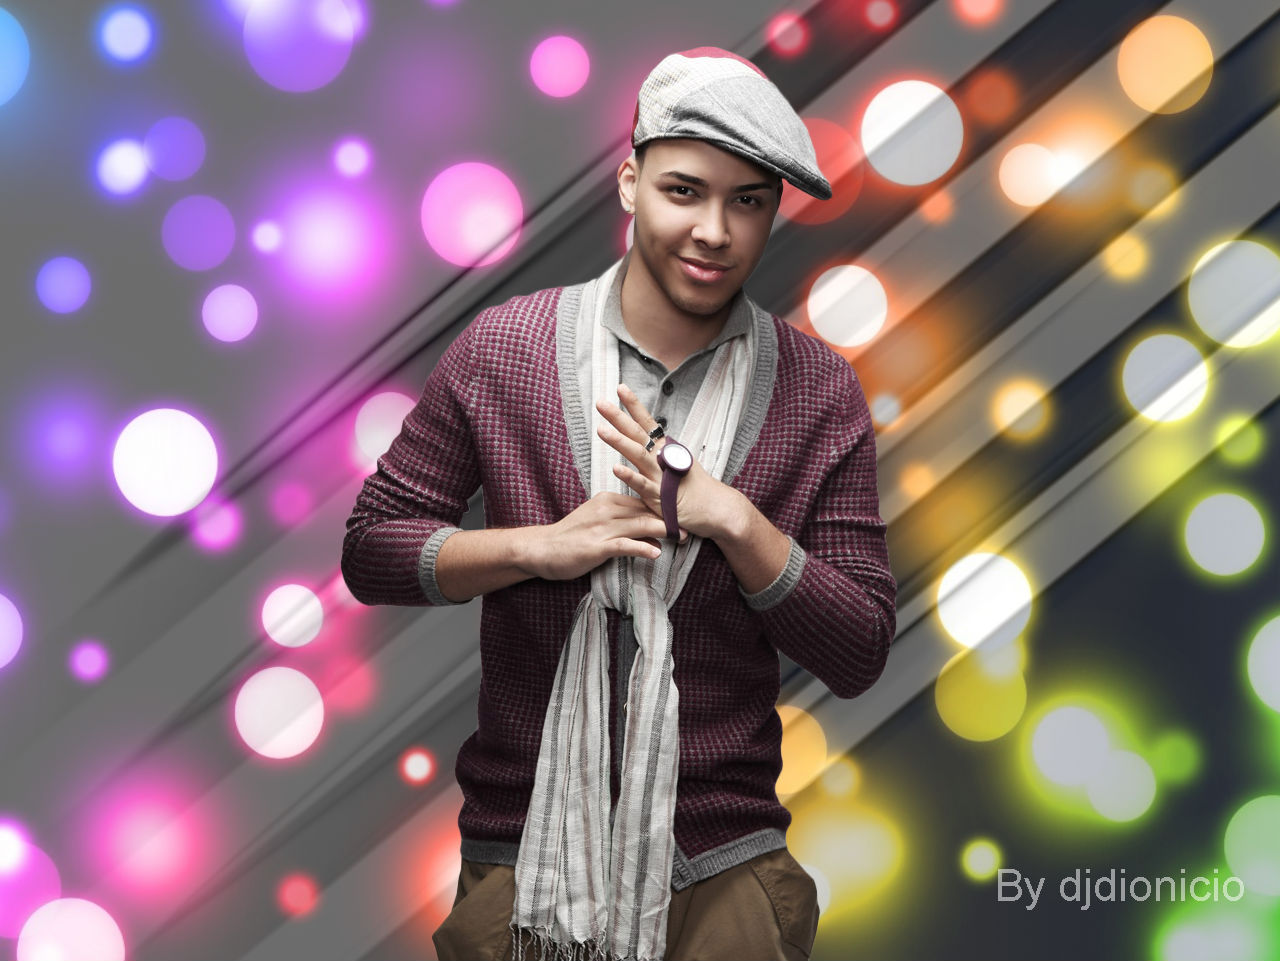 fotos e imagenes prince royce gratis para poner como fondo de pantalla